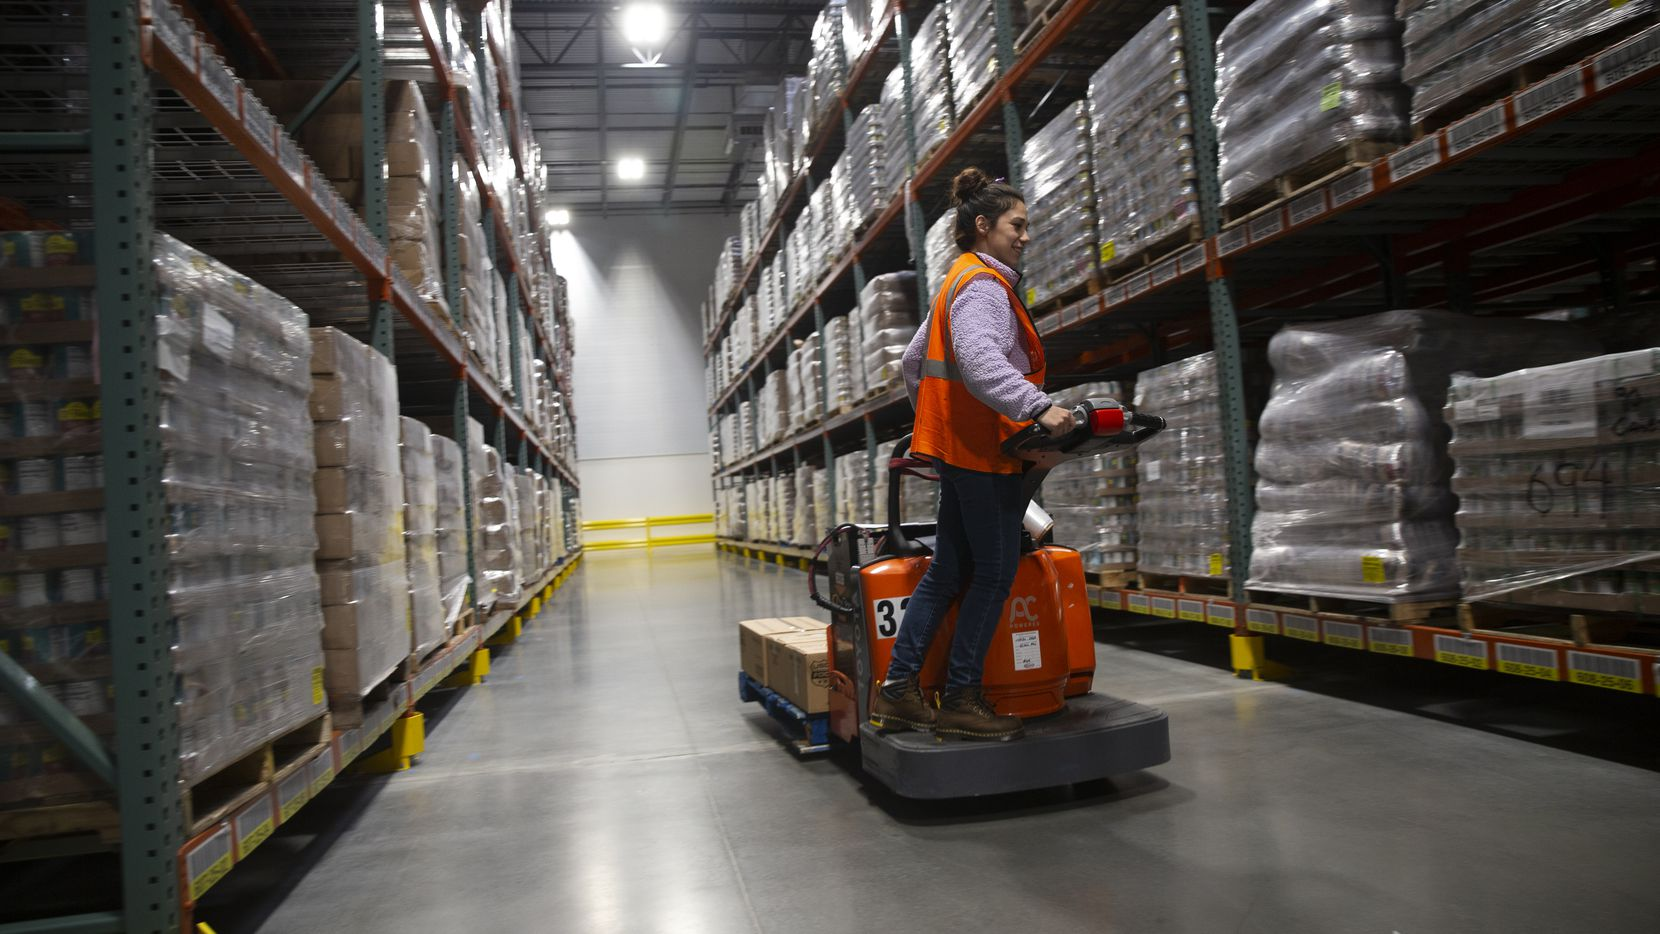 Veronica Gonzalez, a distribution associate for the North Texas Food Bank, works on a delivery in the USDA food room on Feb. 6, 2020 in Plano. The North Texas Food Bank has gotten millions of extra pounds of food from the federal government due to purchases by the Trump administration in the wake of trade conflict with China.